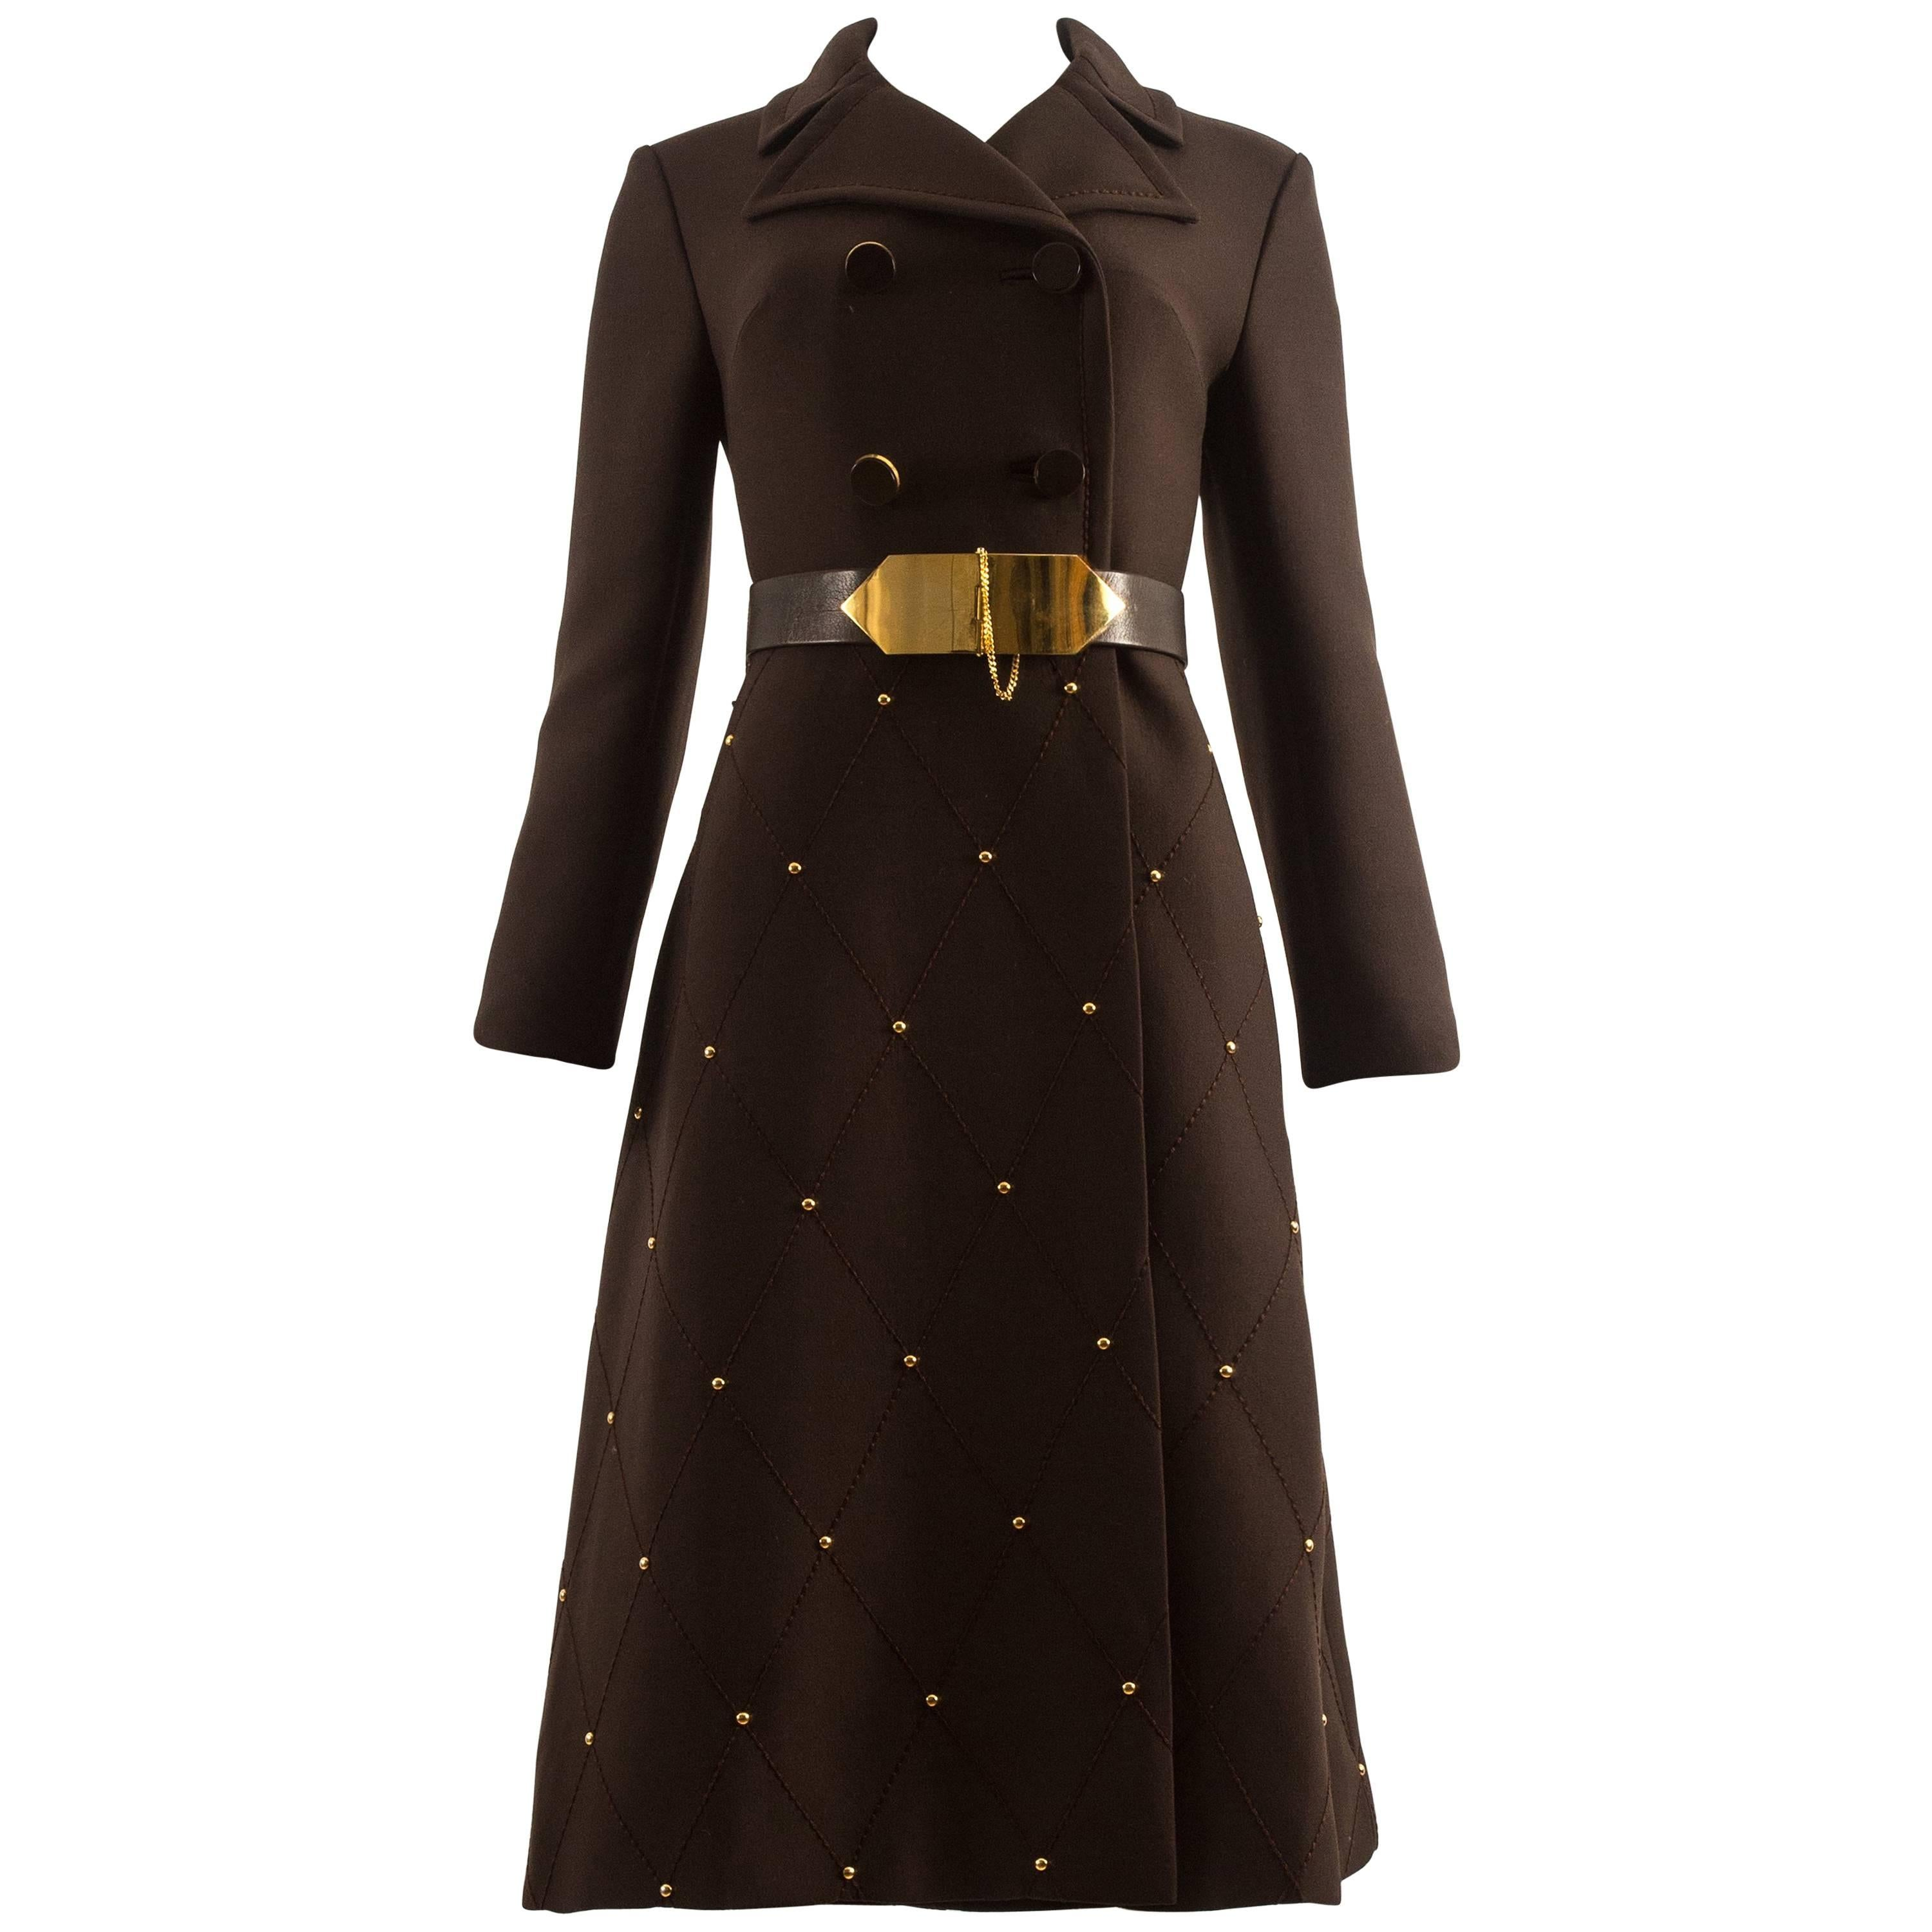 1960s brown wool coat with gold studs and belt